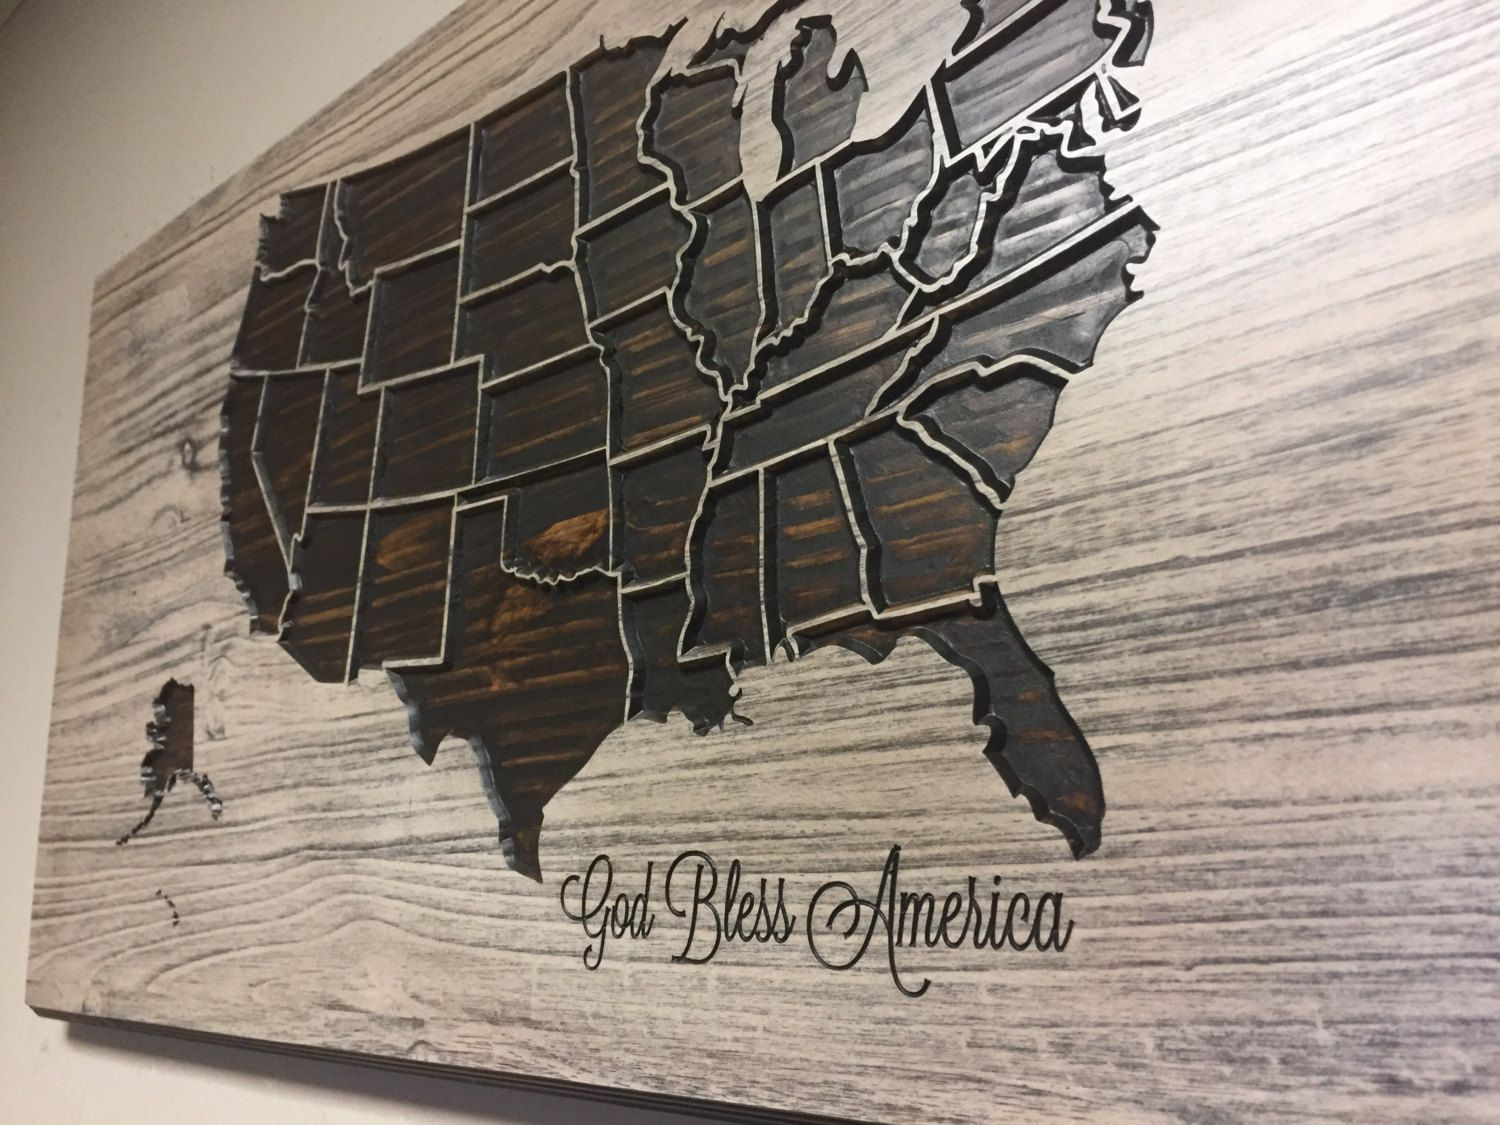 God Bless America Decor Wooden Us Map Wood Wall Art Home Wall Decor United States Map With States Vintag Carved Wall Art Map Wall Decor Diy Map Wall Decor